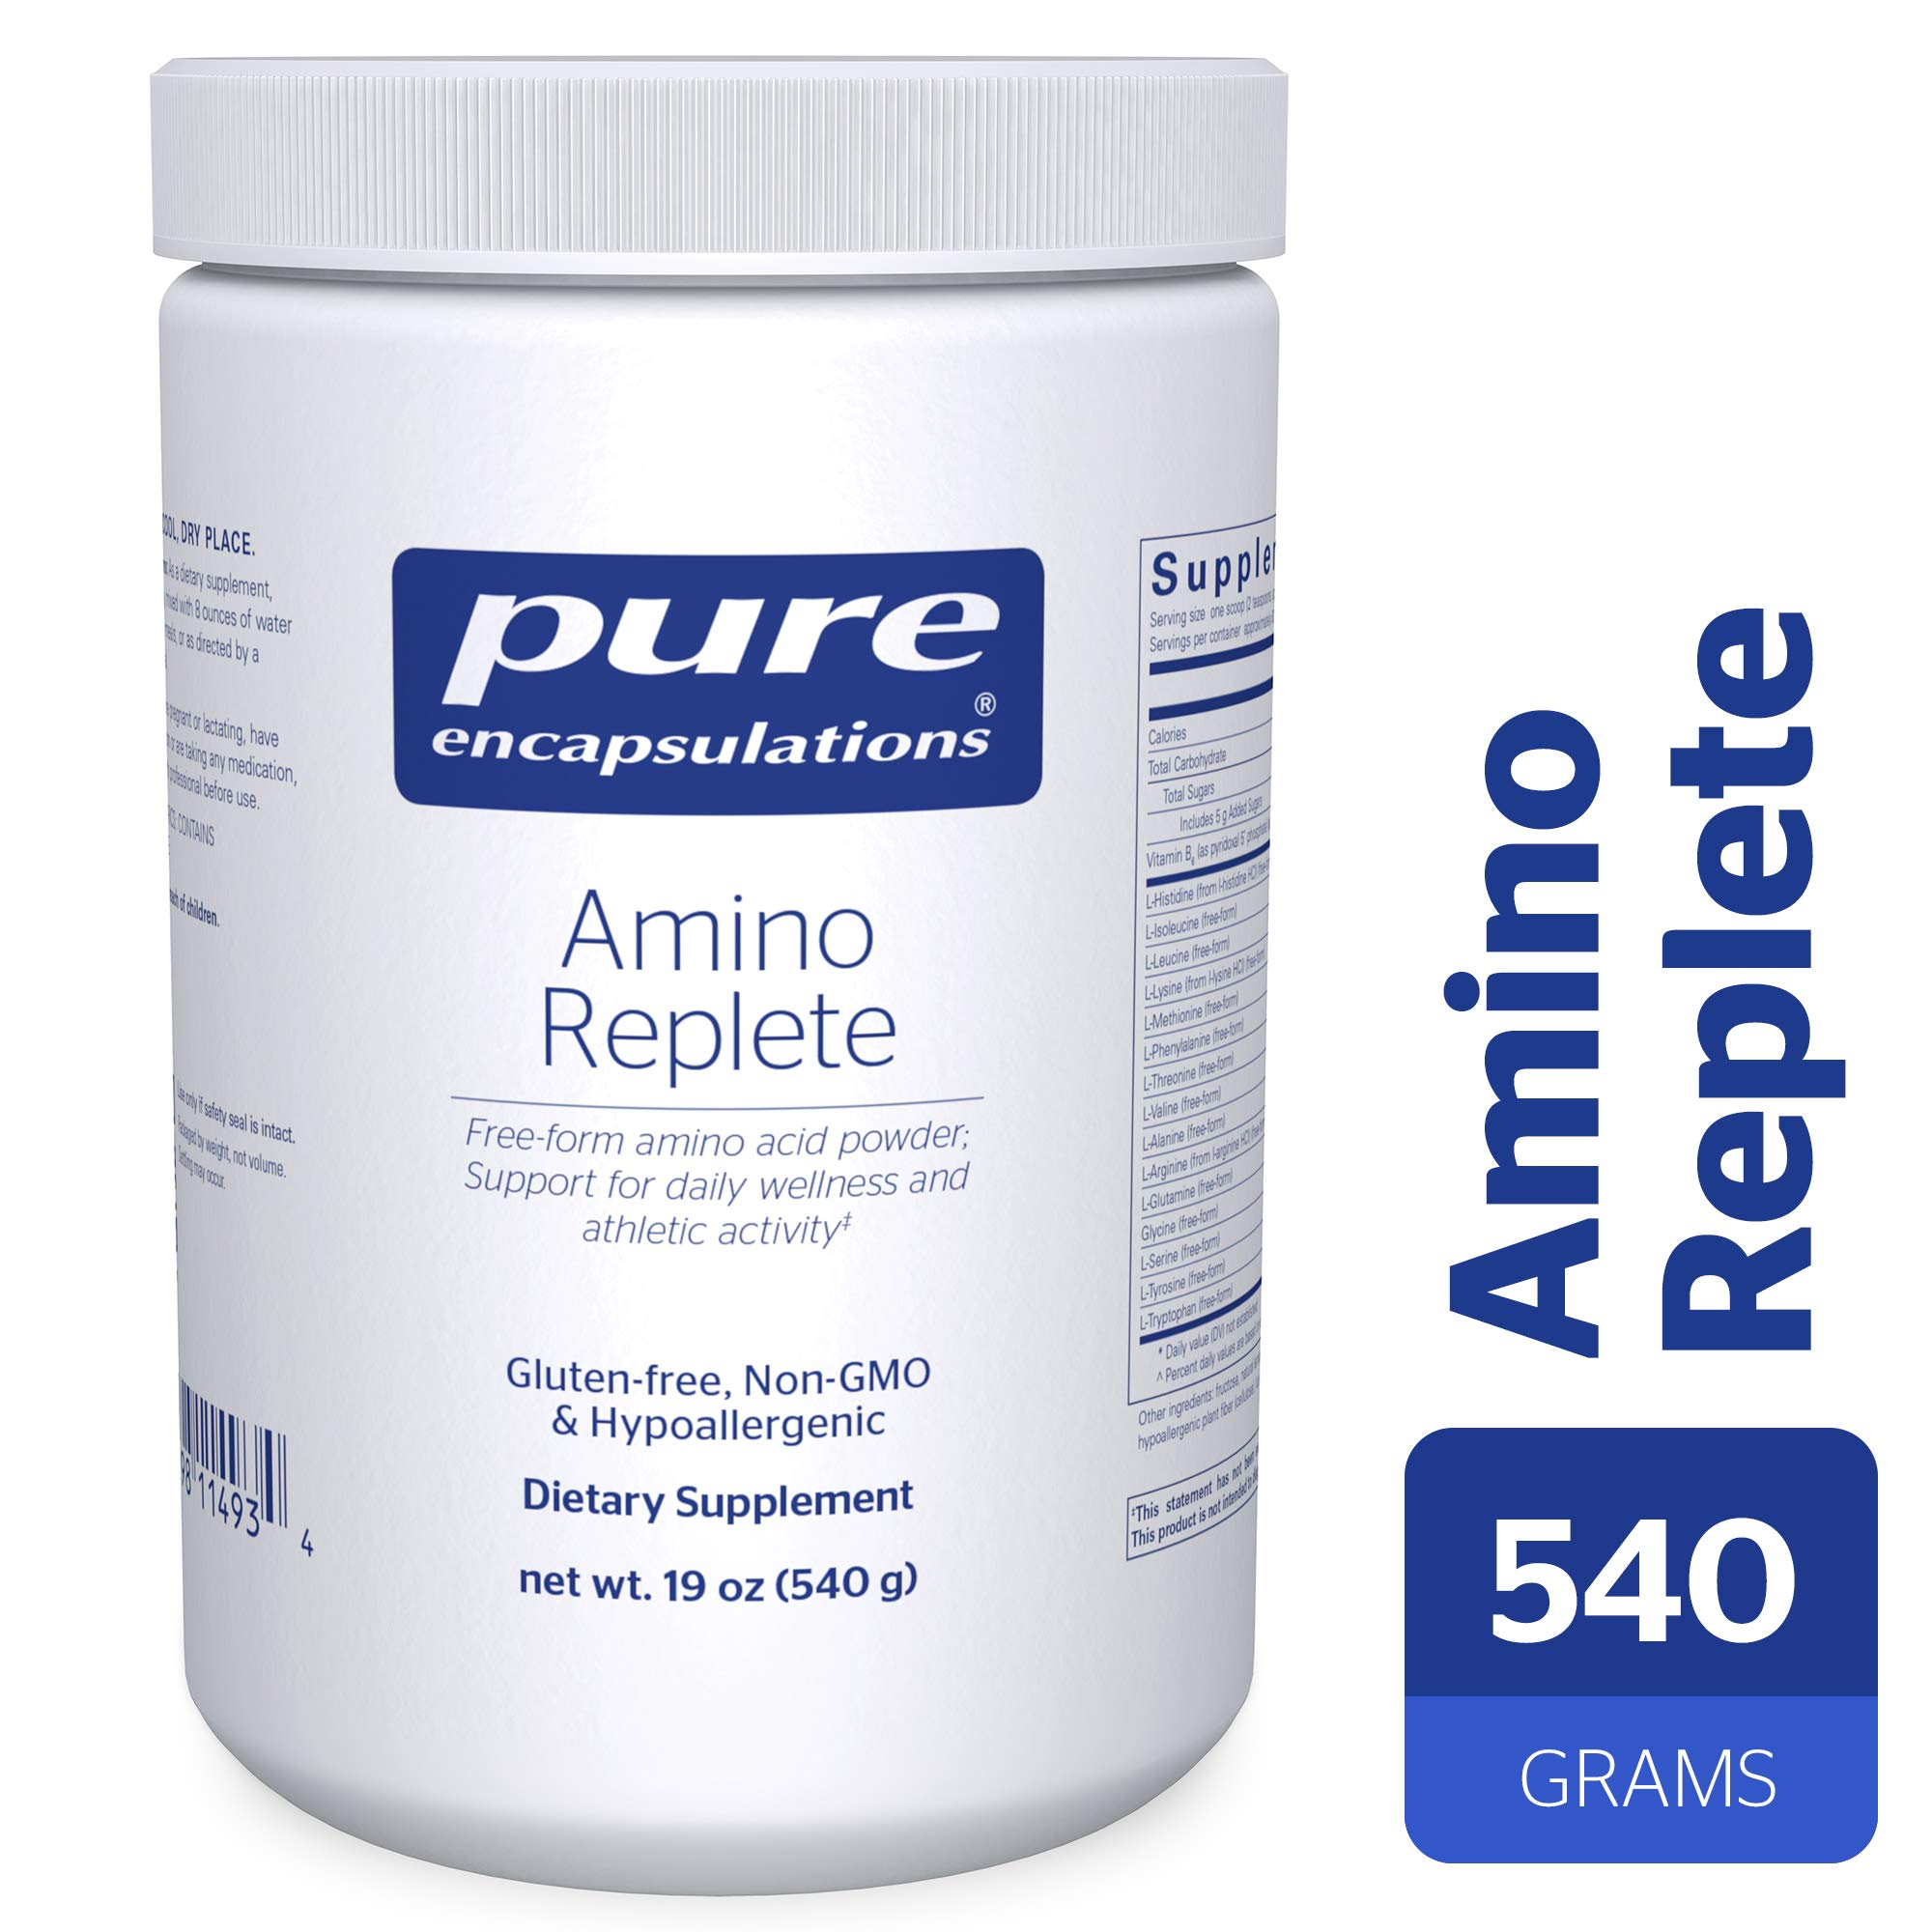 Pure Encapsulations - Amino Replete - Hypoallergenic Free-Form Amino Acid Powder Supplement - 540 Grams